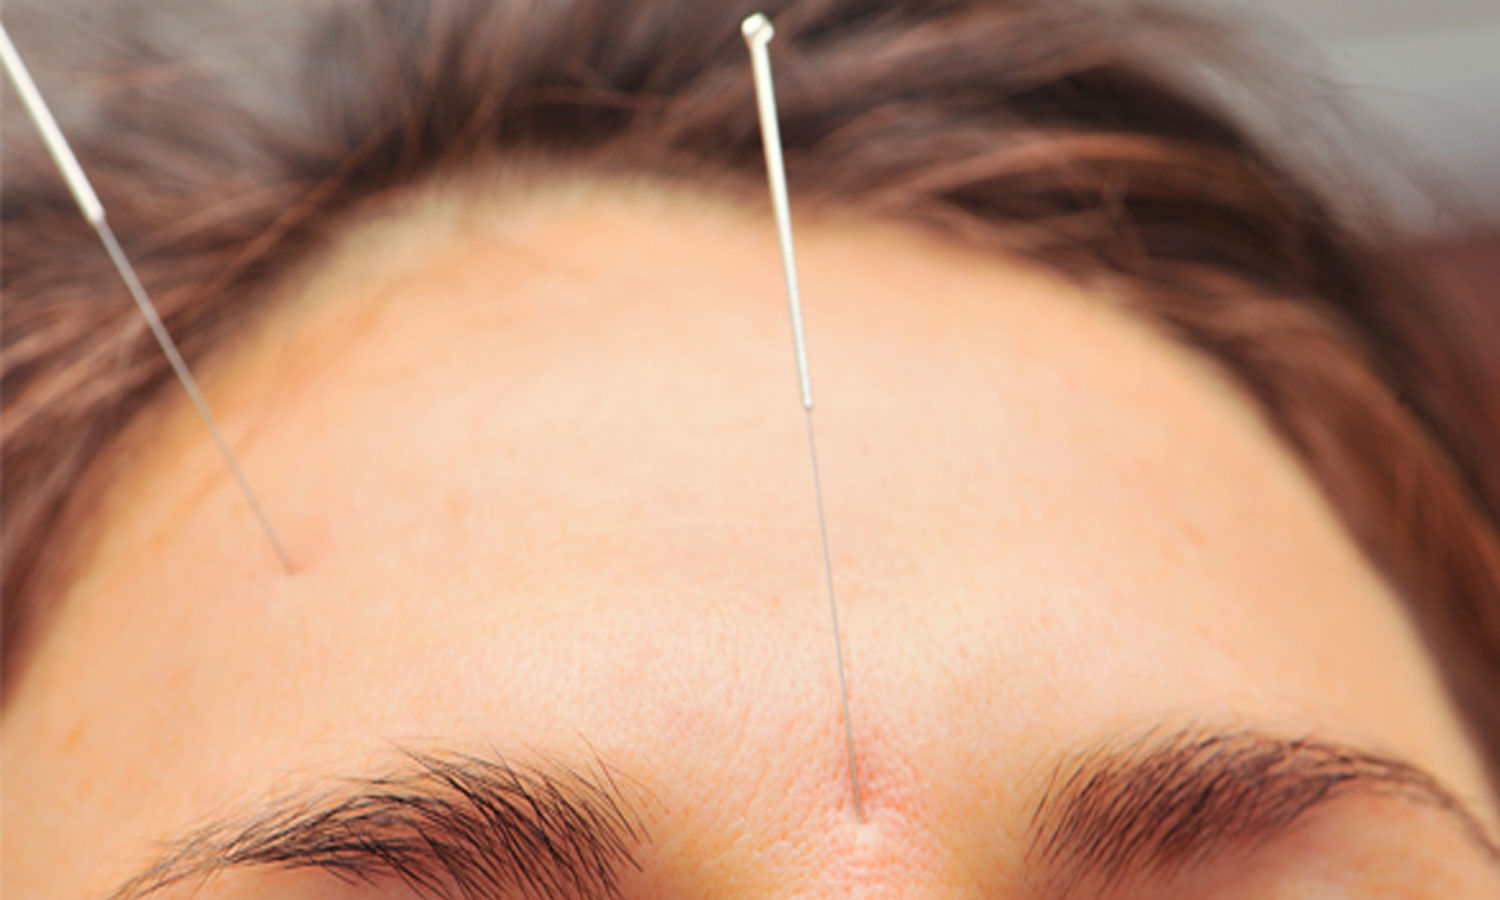 Acupuncture can reduce migraine headaches